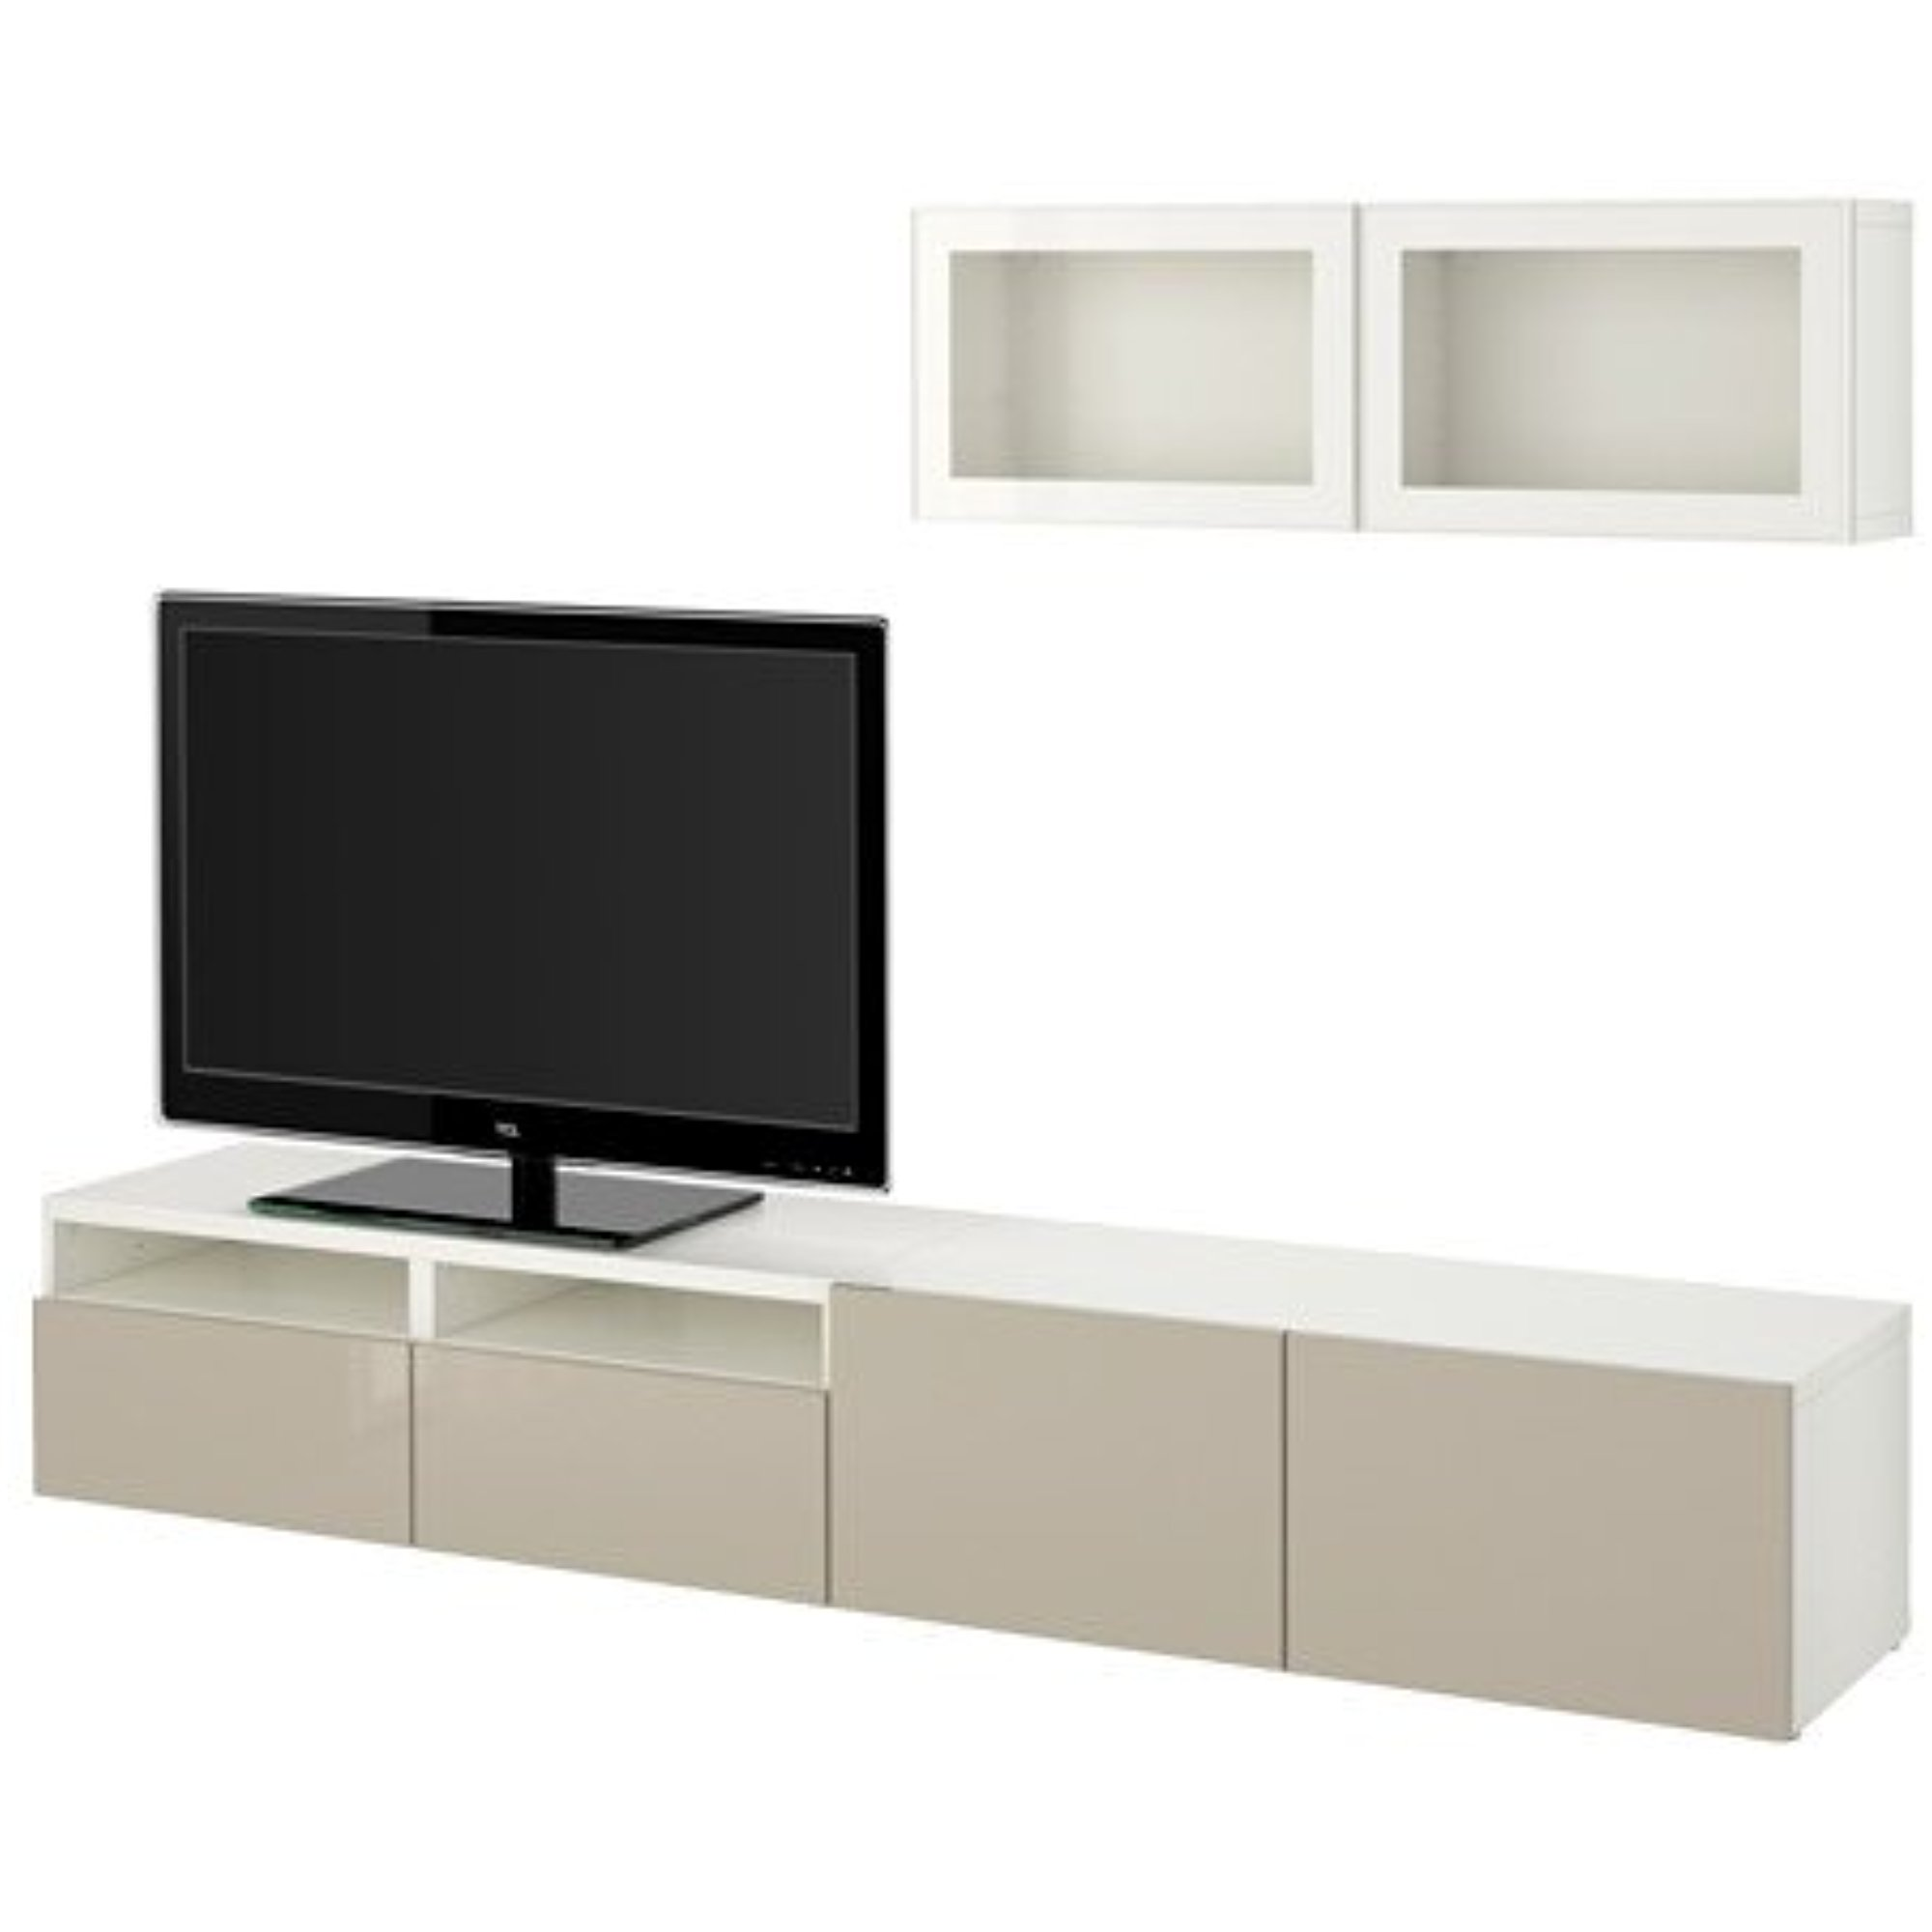 Ikea Tv Storage Combination With Push Open Drawers And Glass Doors  # Meuble Tv Kaorka Ikea